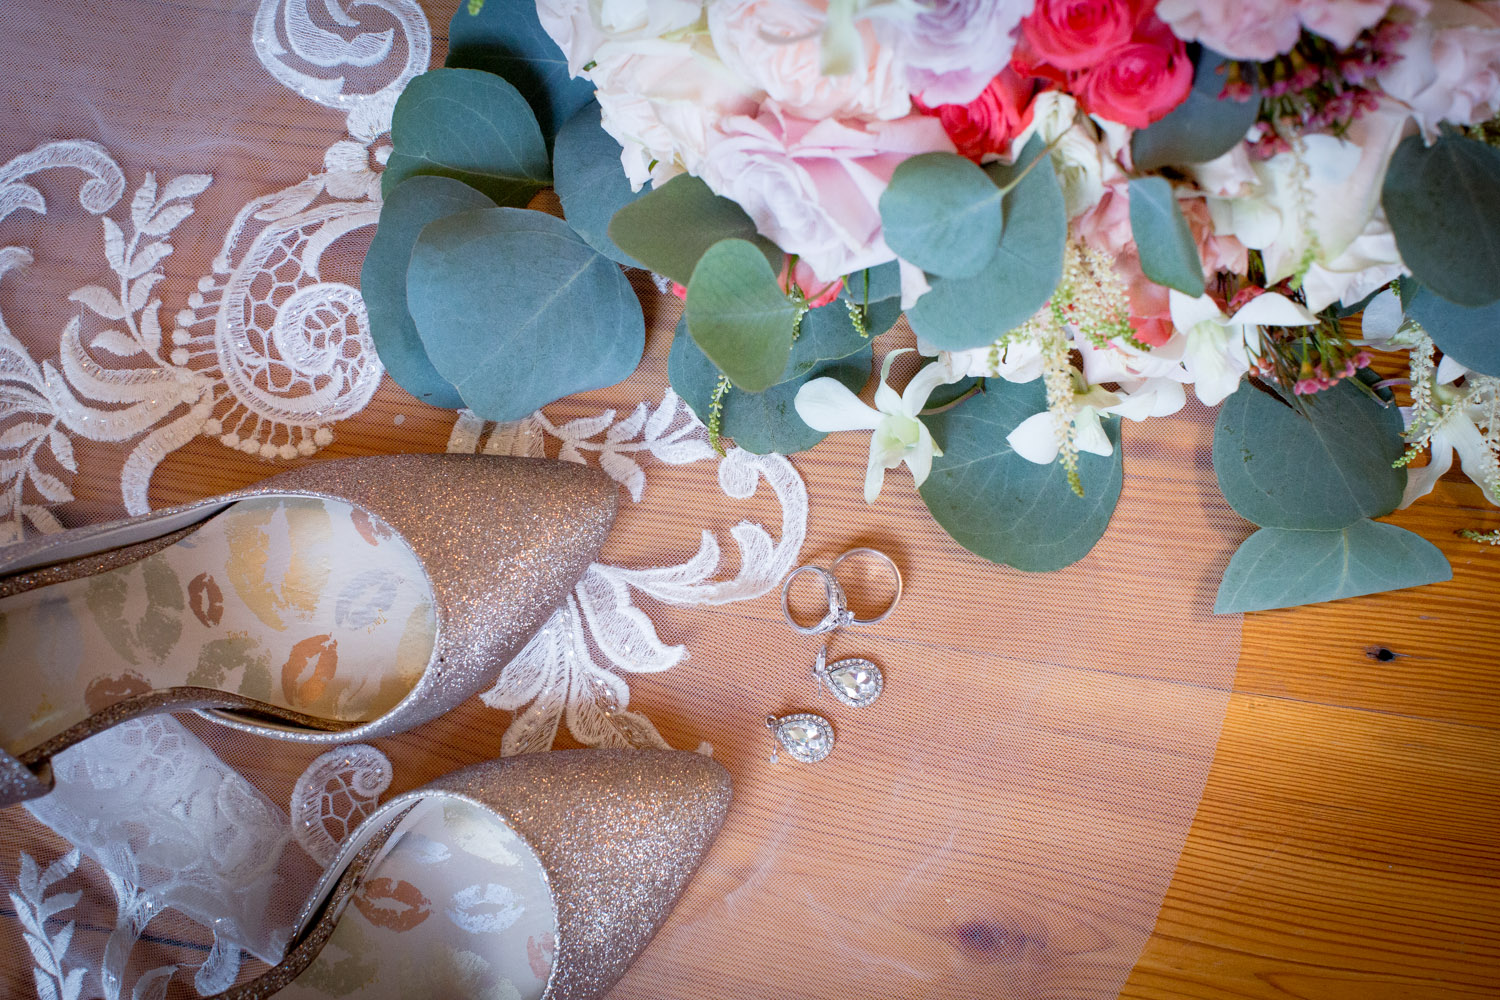 04-hotel-broz-new-prague-mn-minnesota-wedding-venue-photographer-styled-shoot-bridal-details-lace-hem-details-gold-glittery-shoes-victorian-themes-mahonen-photography.jpg